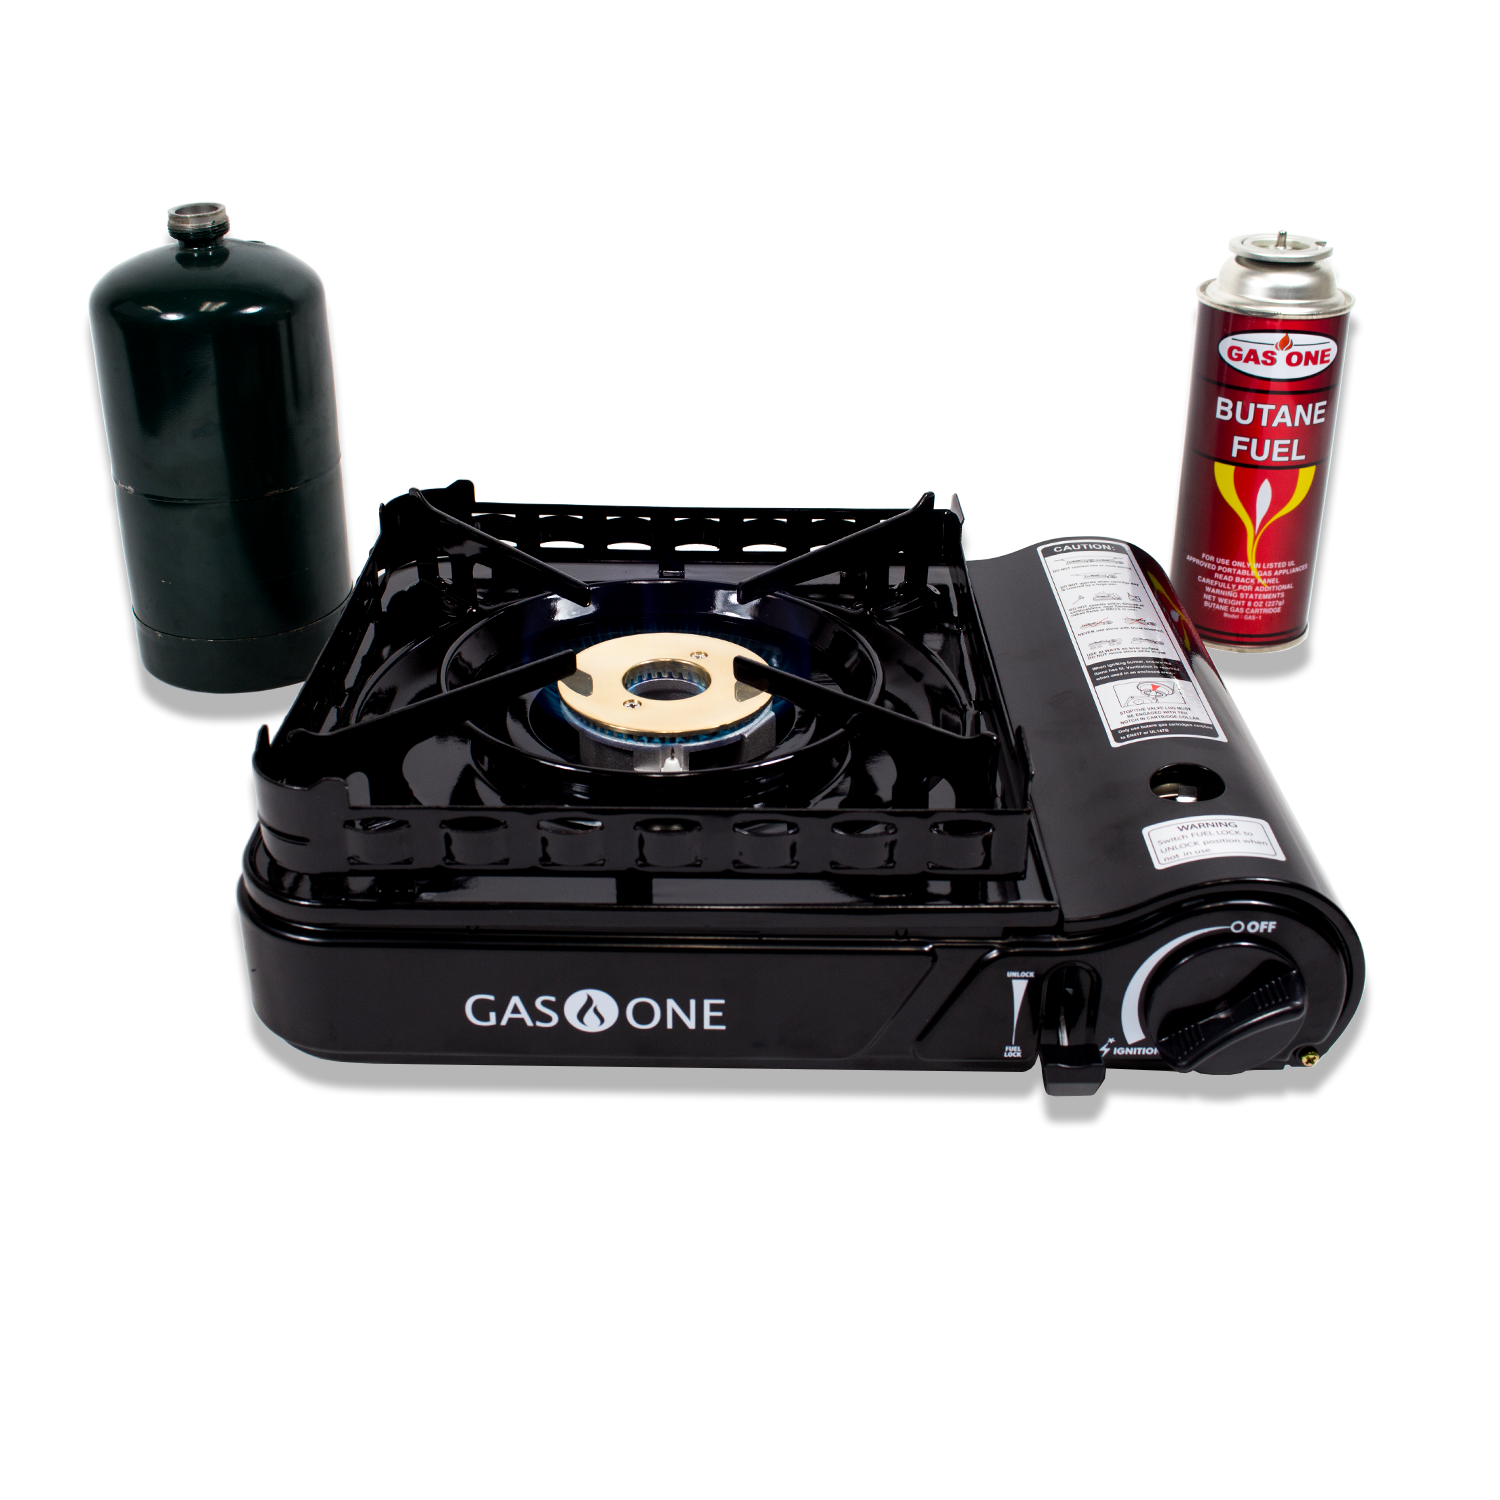 GAS ONE 15,000 BTU Portable Propane or Butane Dual Fuel Stove with Brass